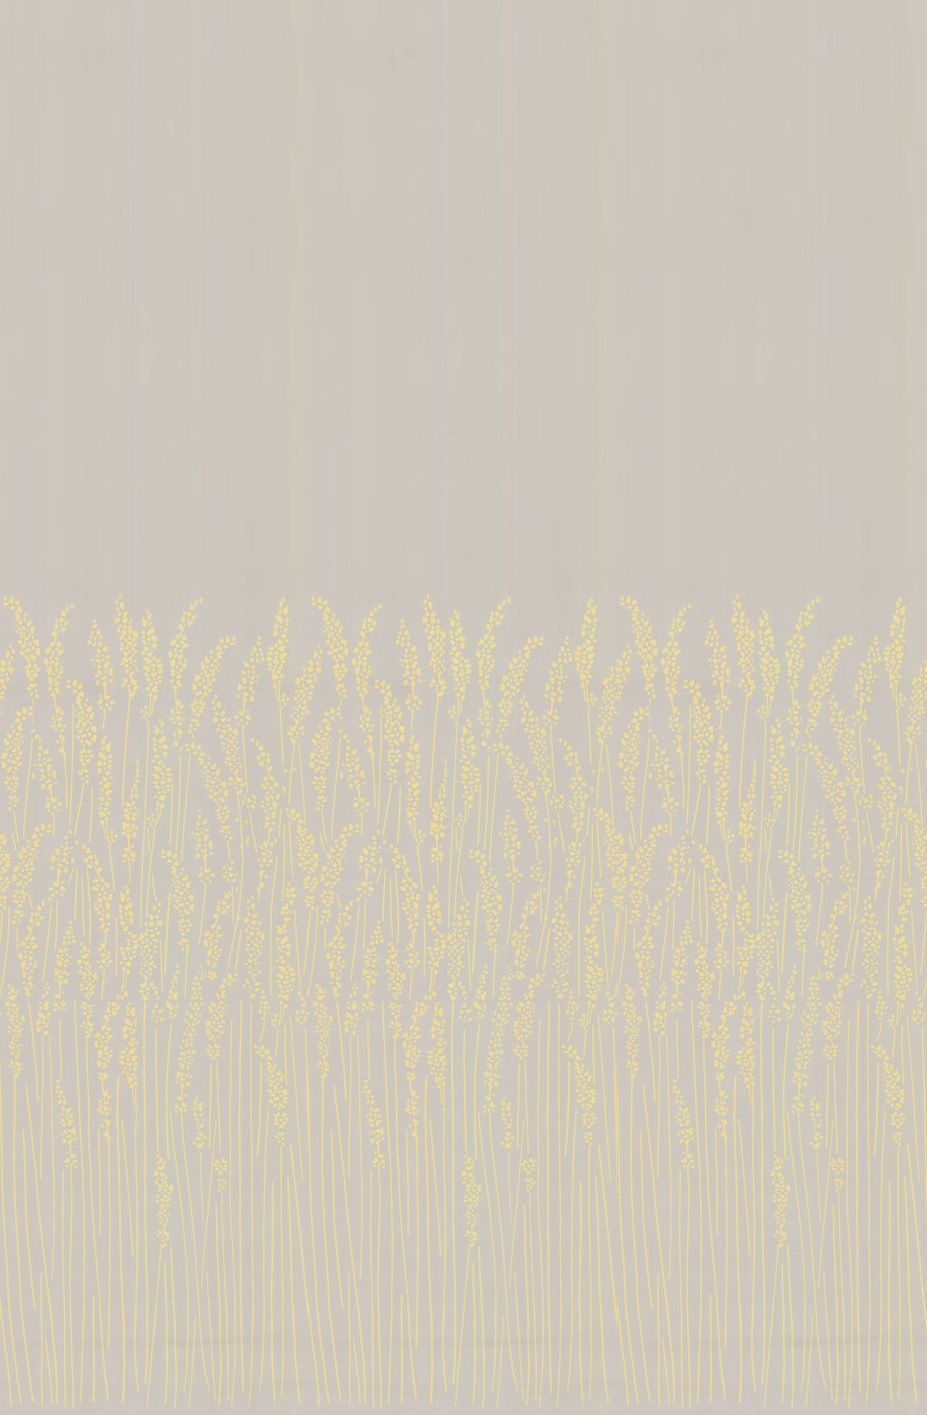 Feather Grass Wallpaper - Pale Yellow - by Farrow & Ball